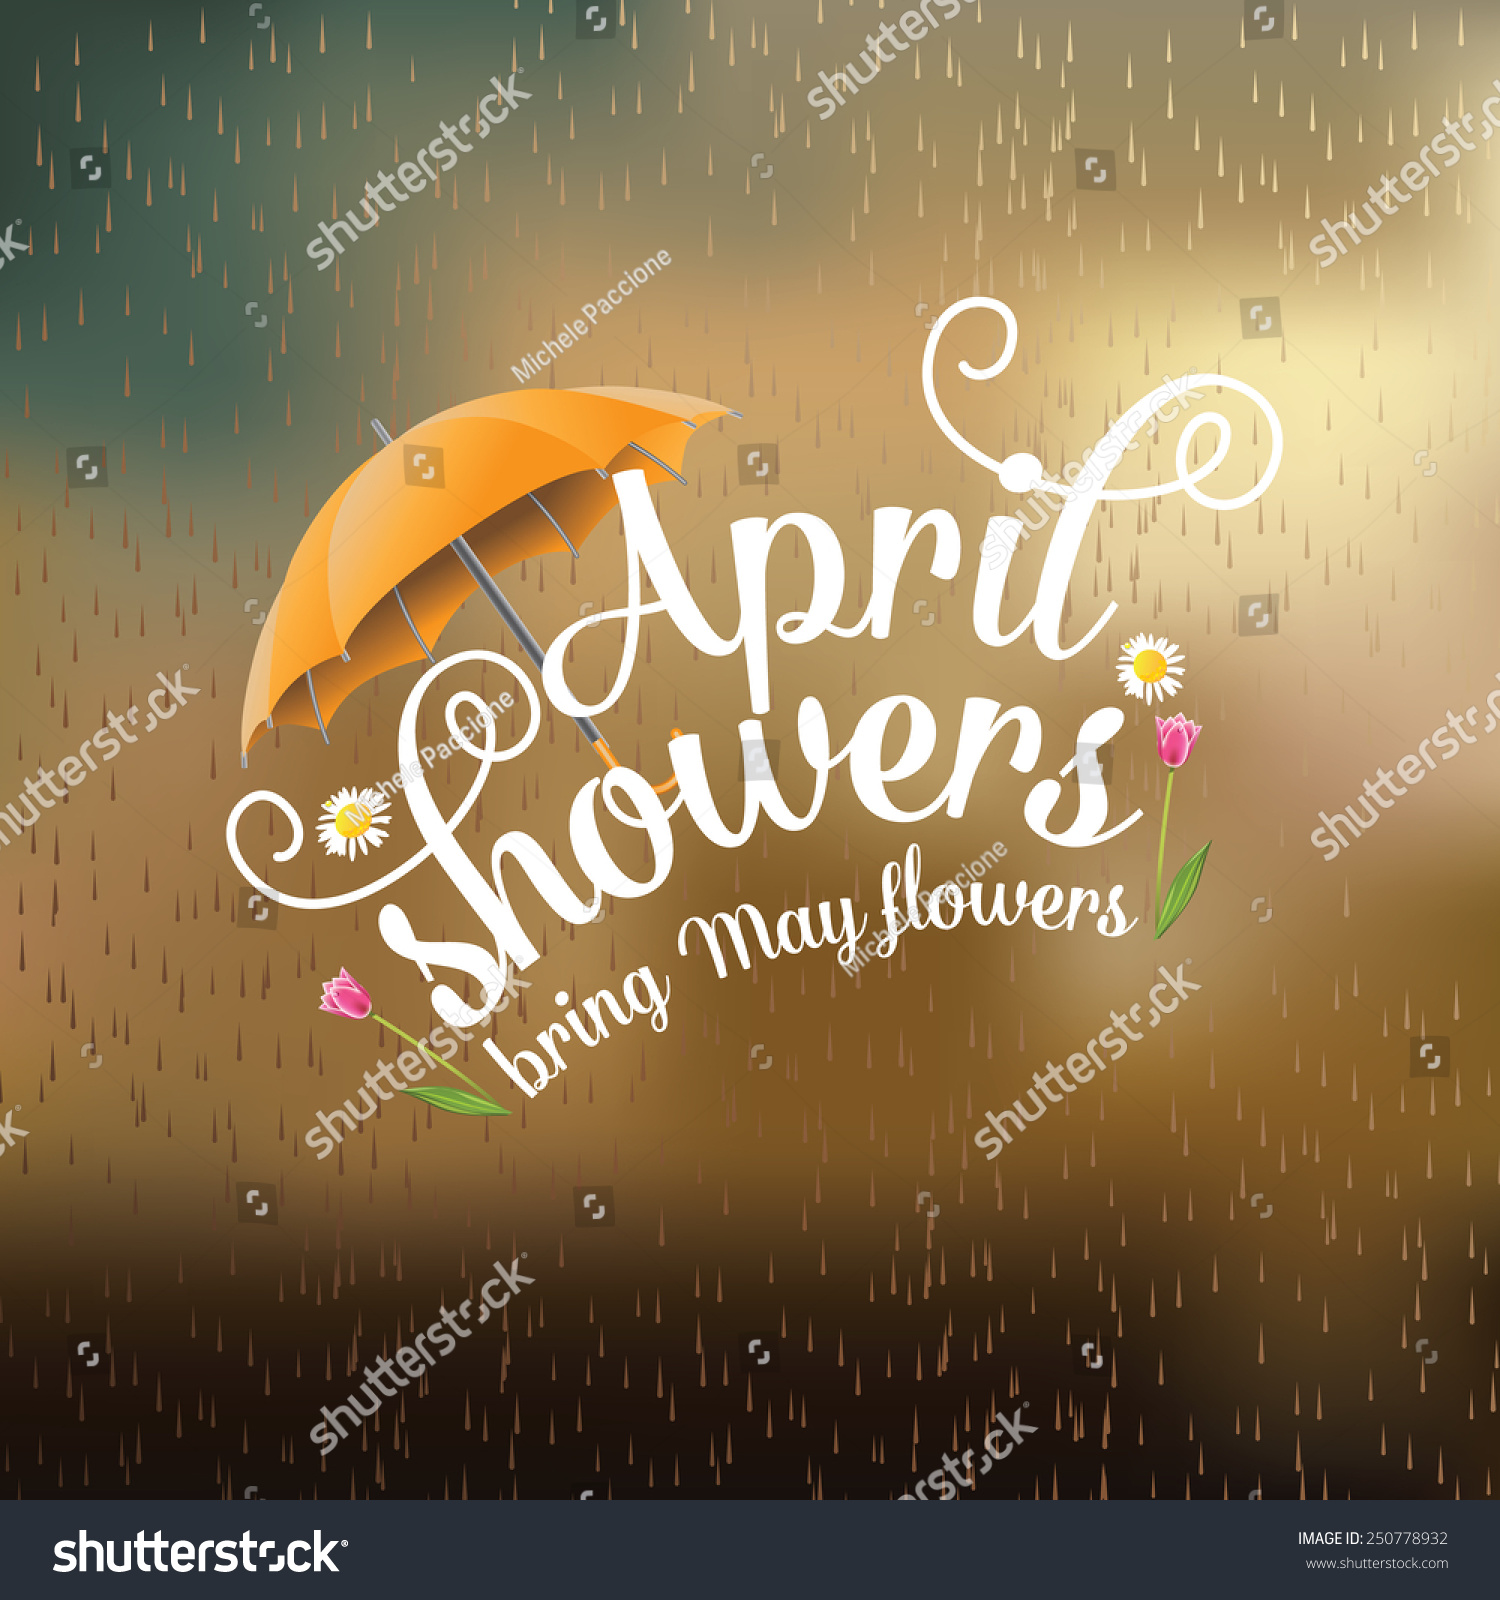 April Showers Bring May Flowers Design Stock Vector Shutterstock